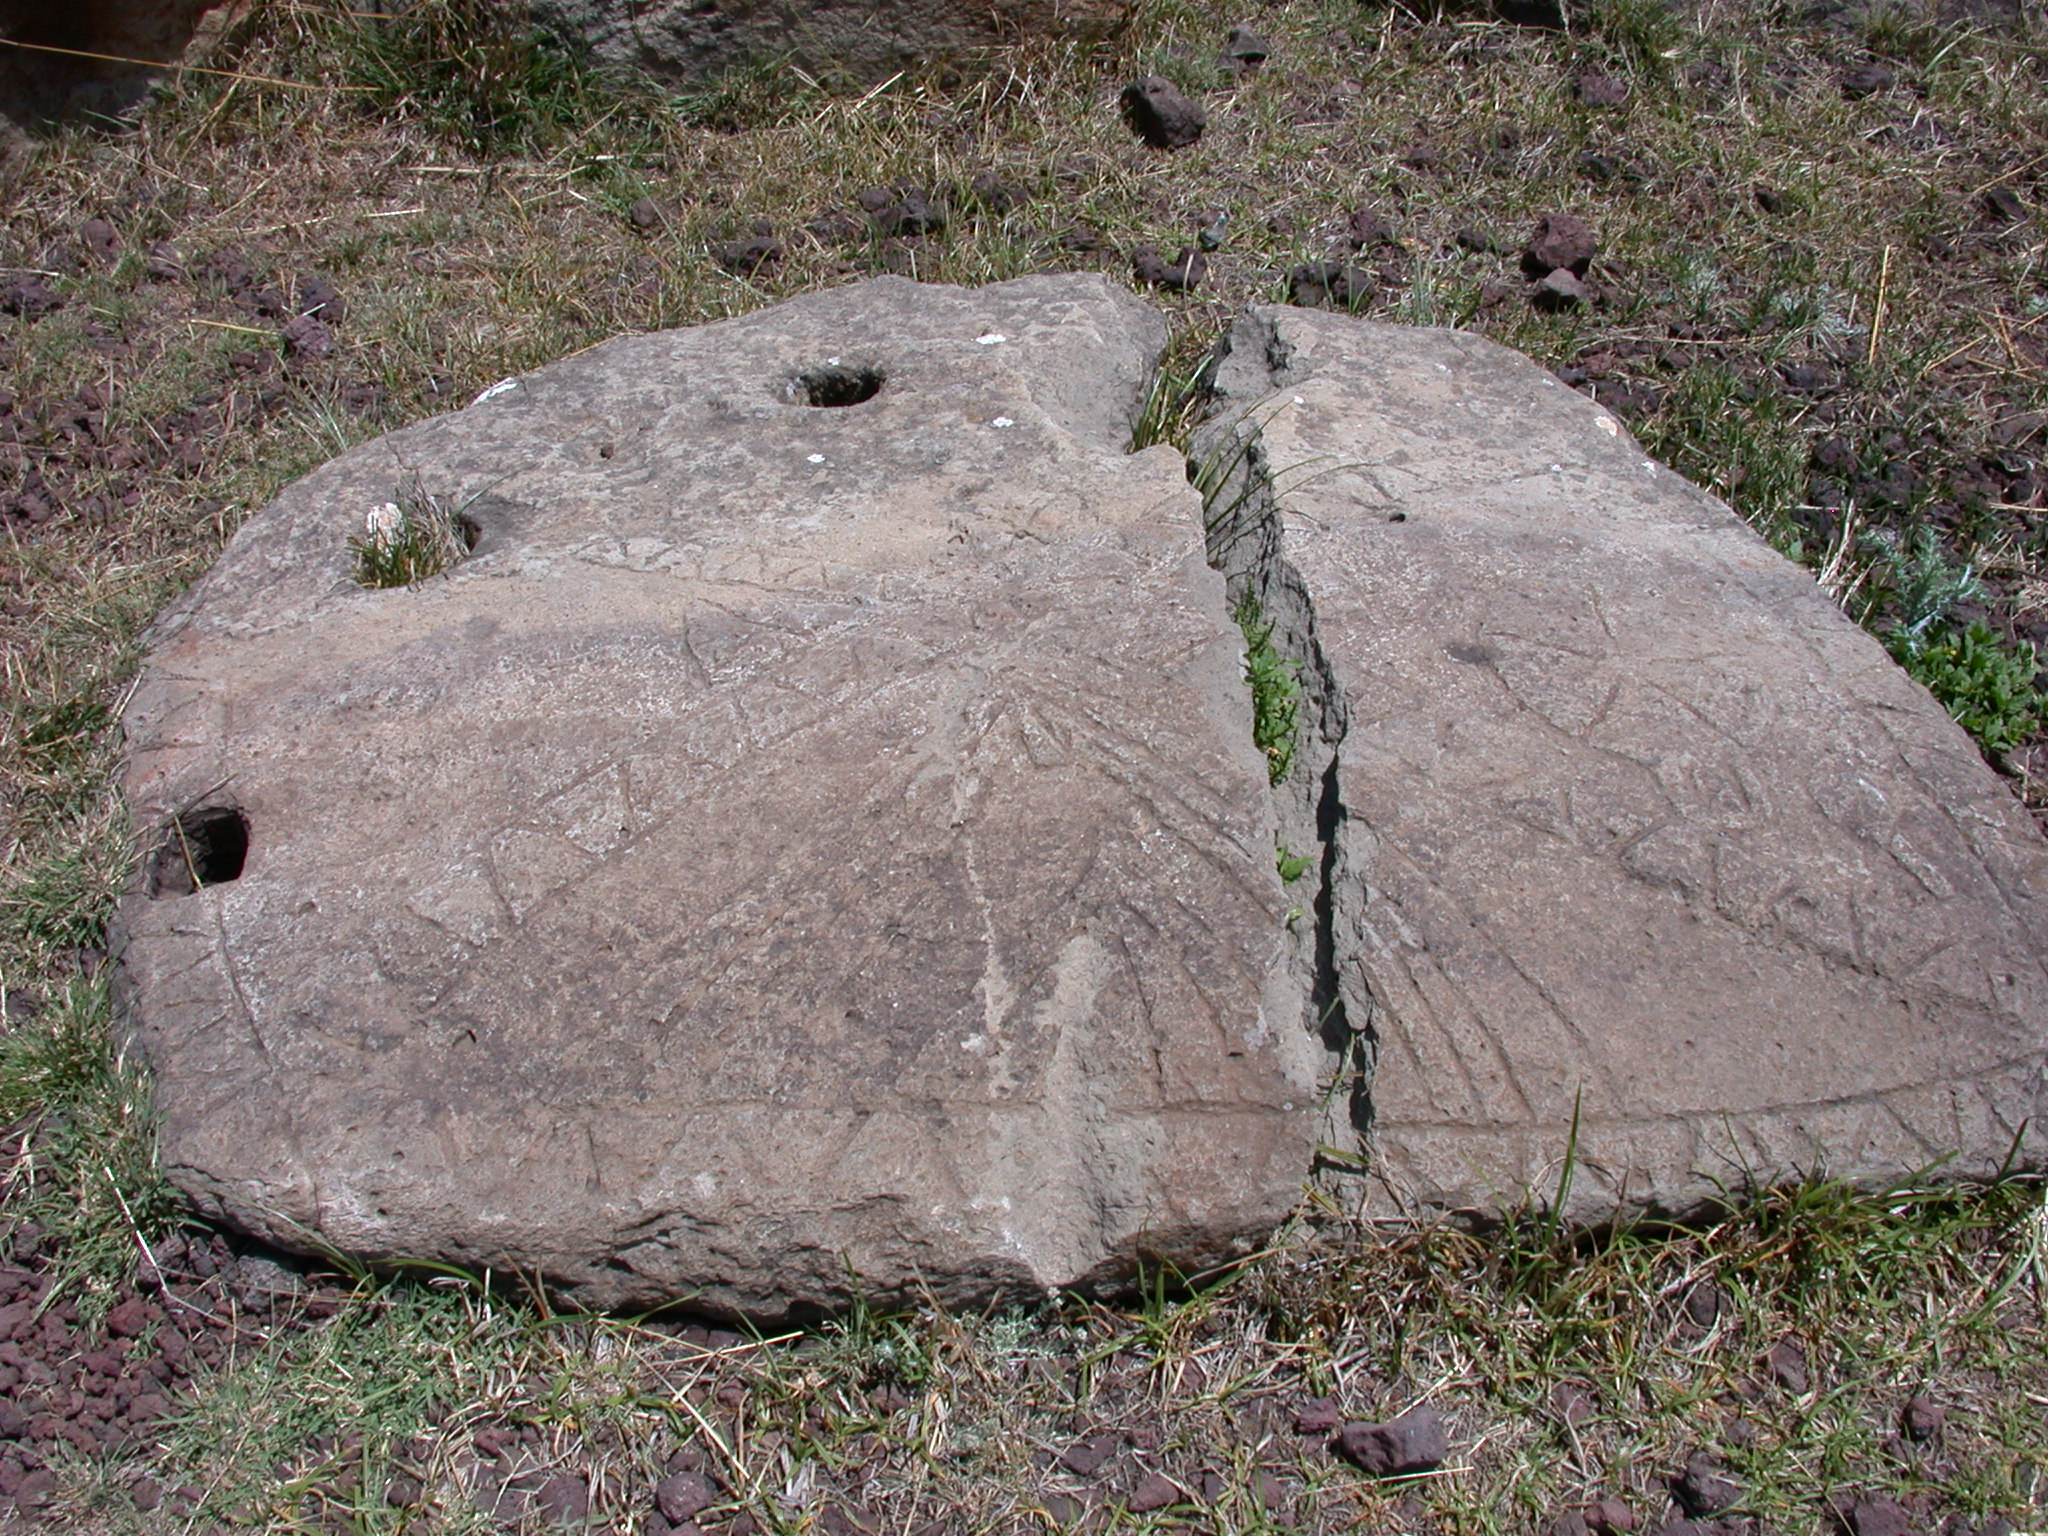 Different Type of Stela, Tiya, South of Addis Ababa, Ethiopia